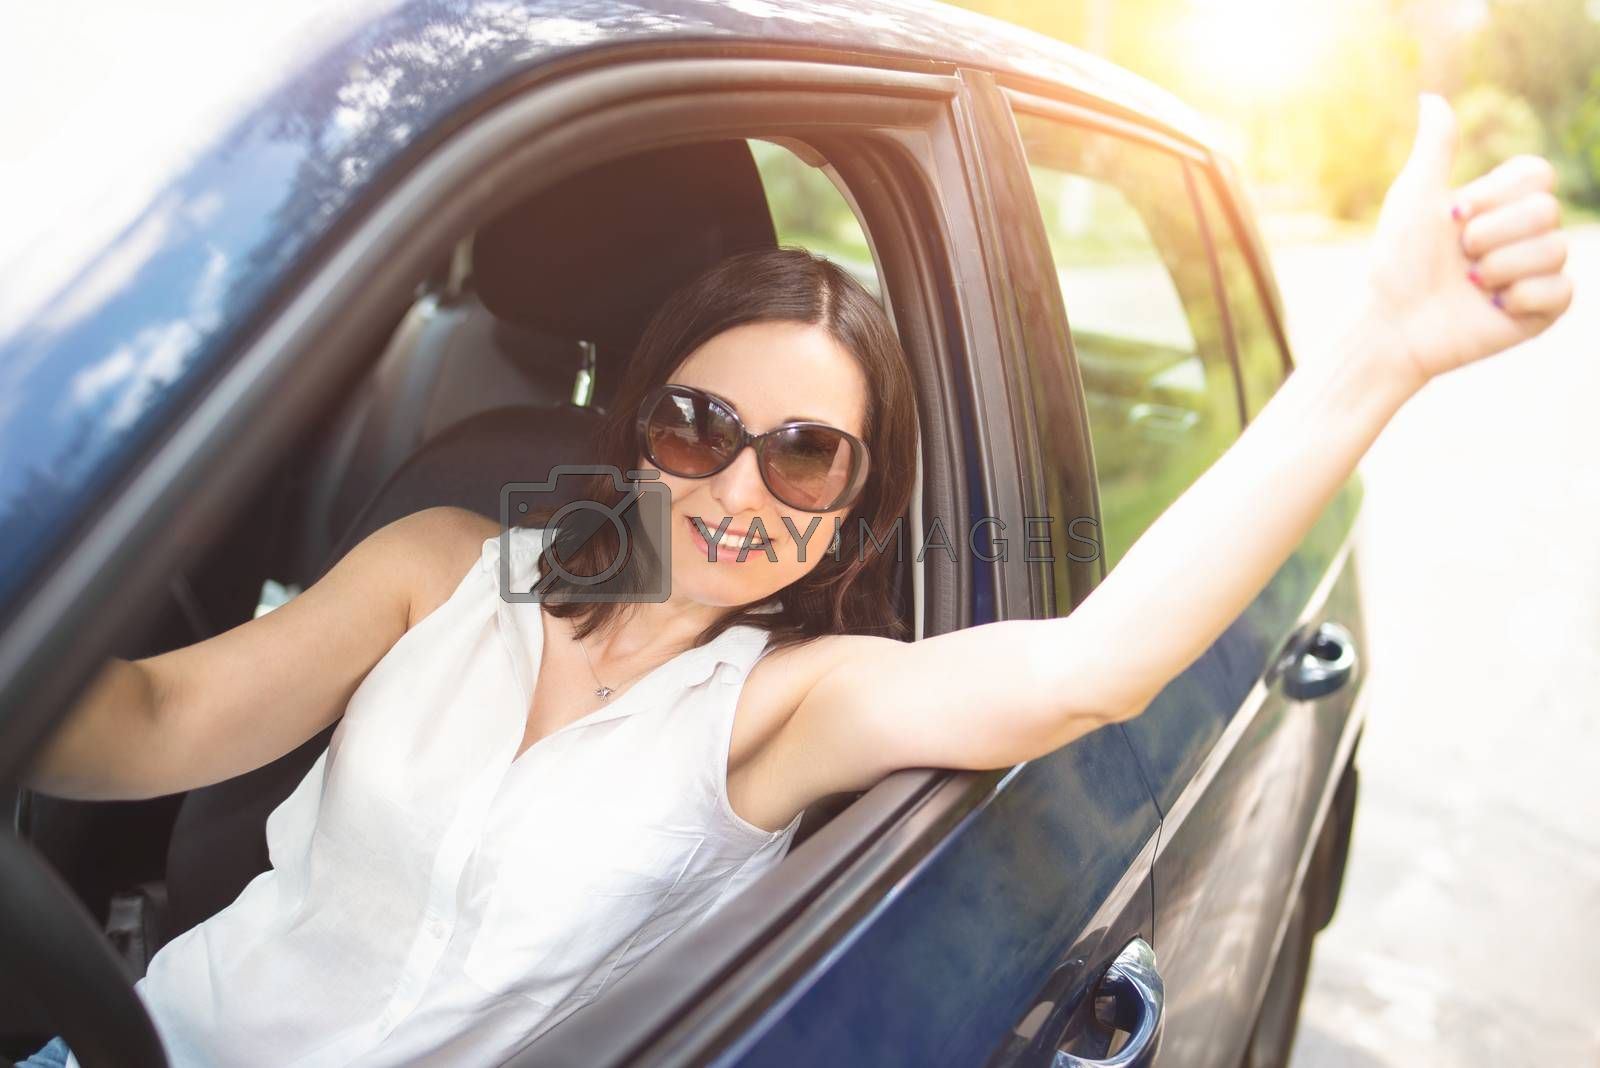 A smart looking middle-aged adult woman wearing sunglasses put her hand out the car window and raised her thumbs up.